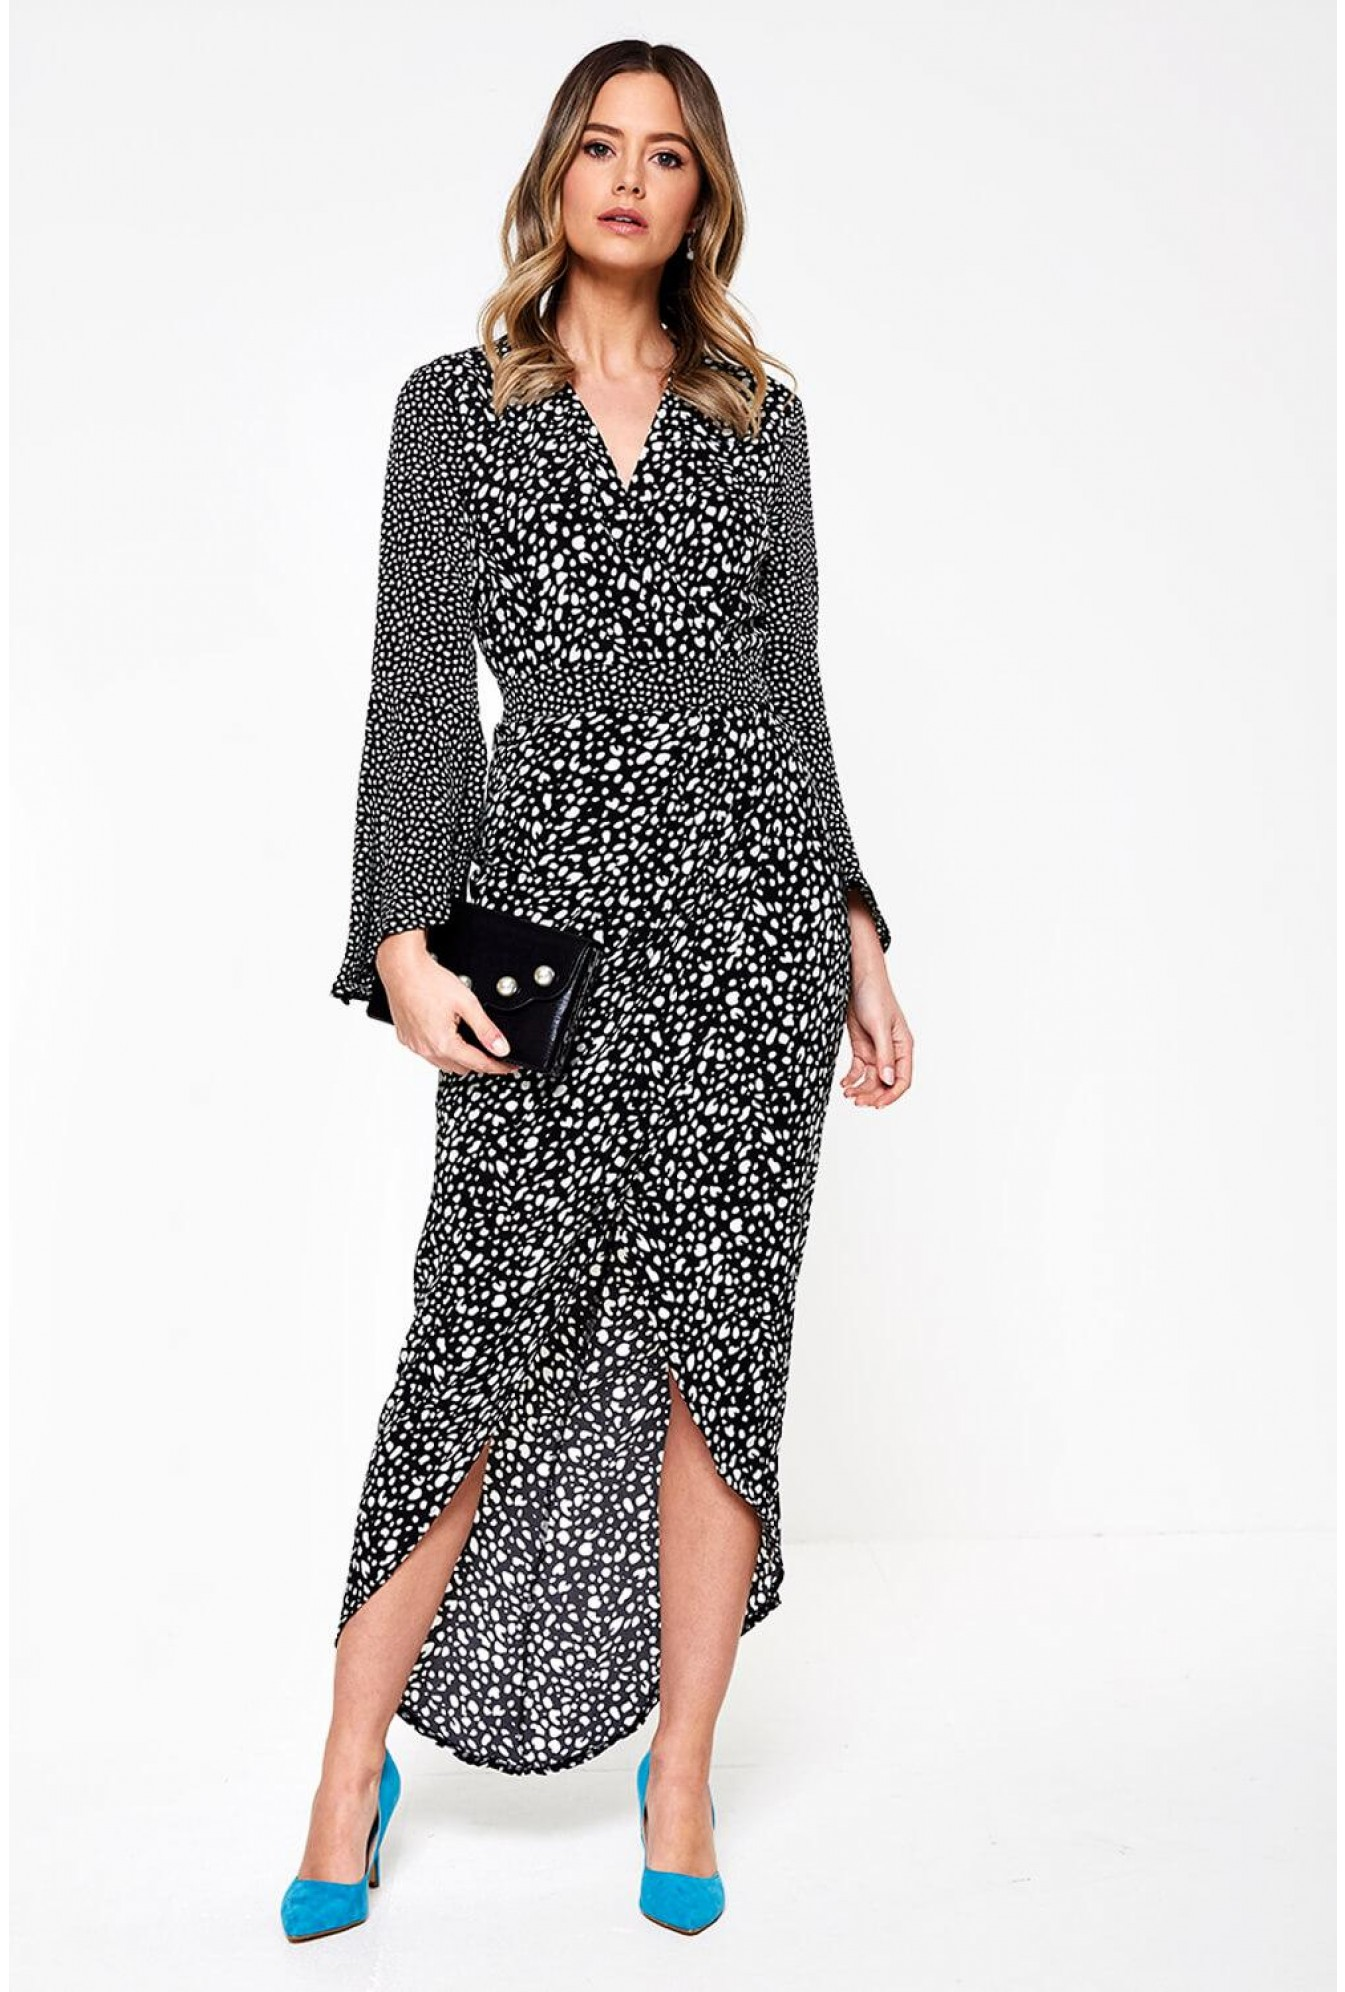 7e84cce5614 Indie Wrap Flute Sleeve Maxi Dress in Black Dot Print